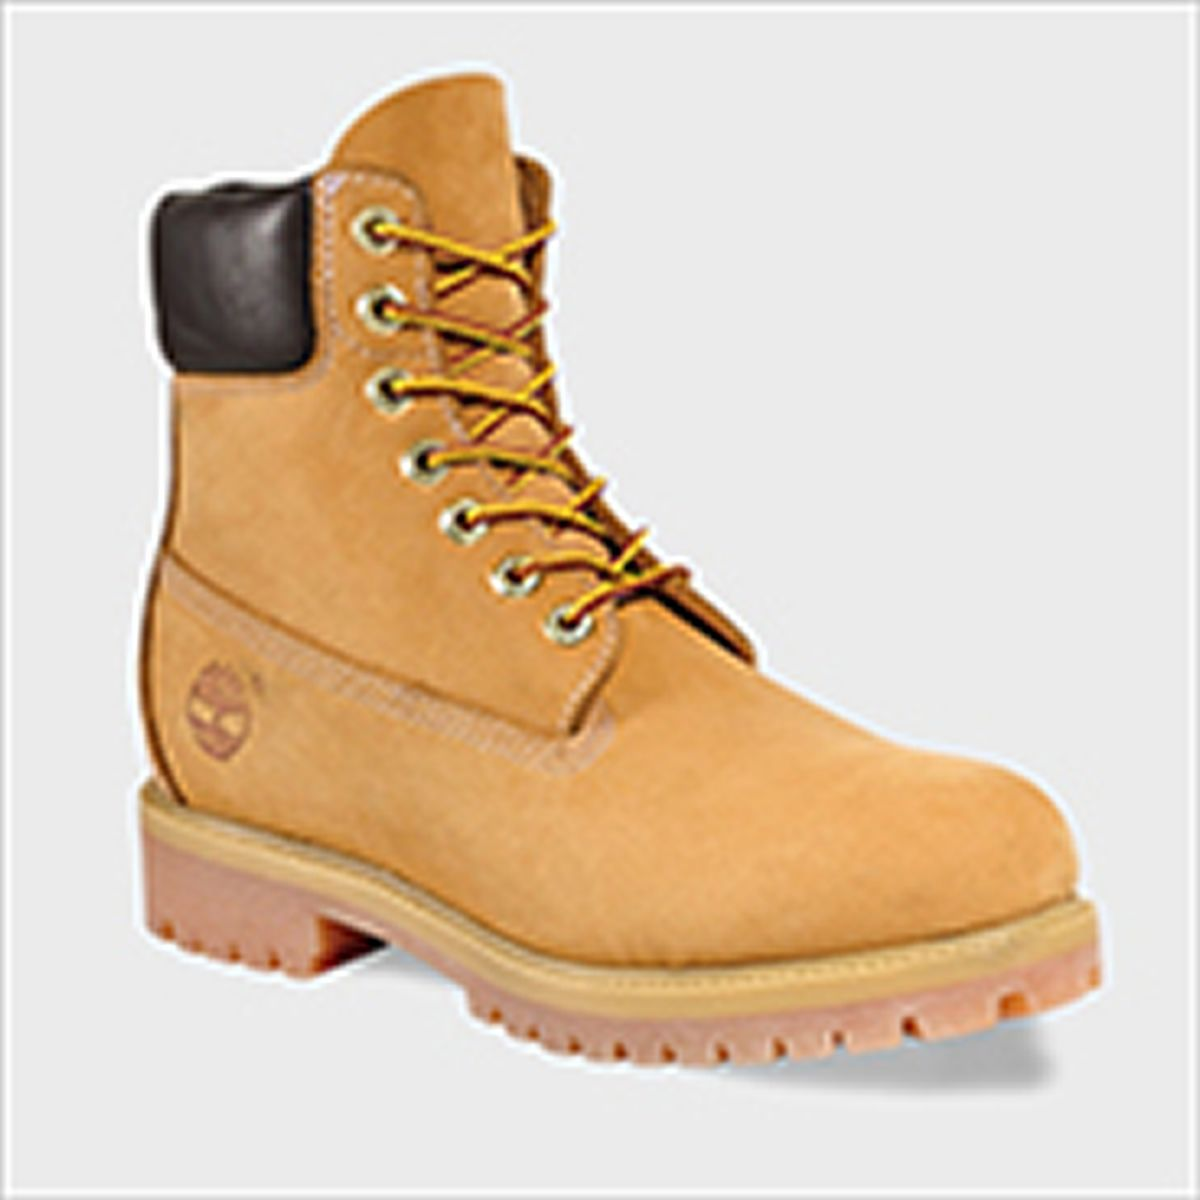 4db4e9855ad Timberland Boots and Shoes For Men - Macy s